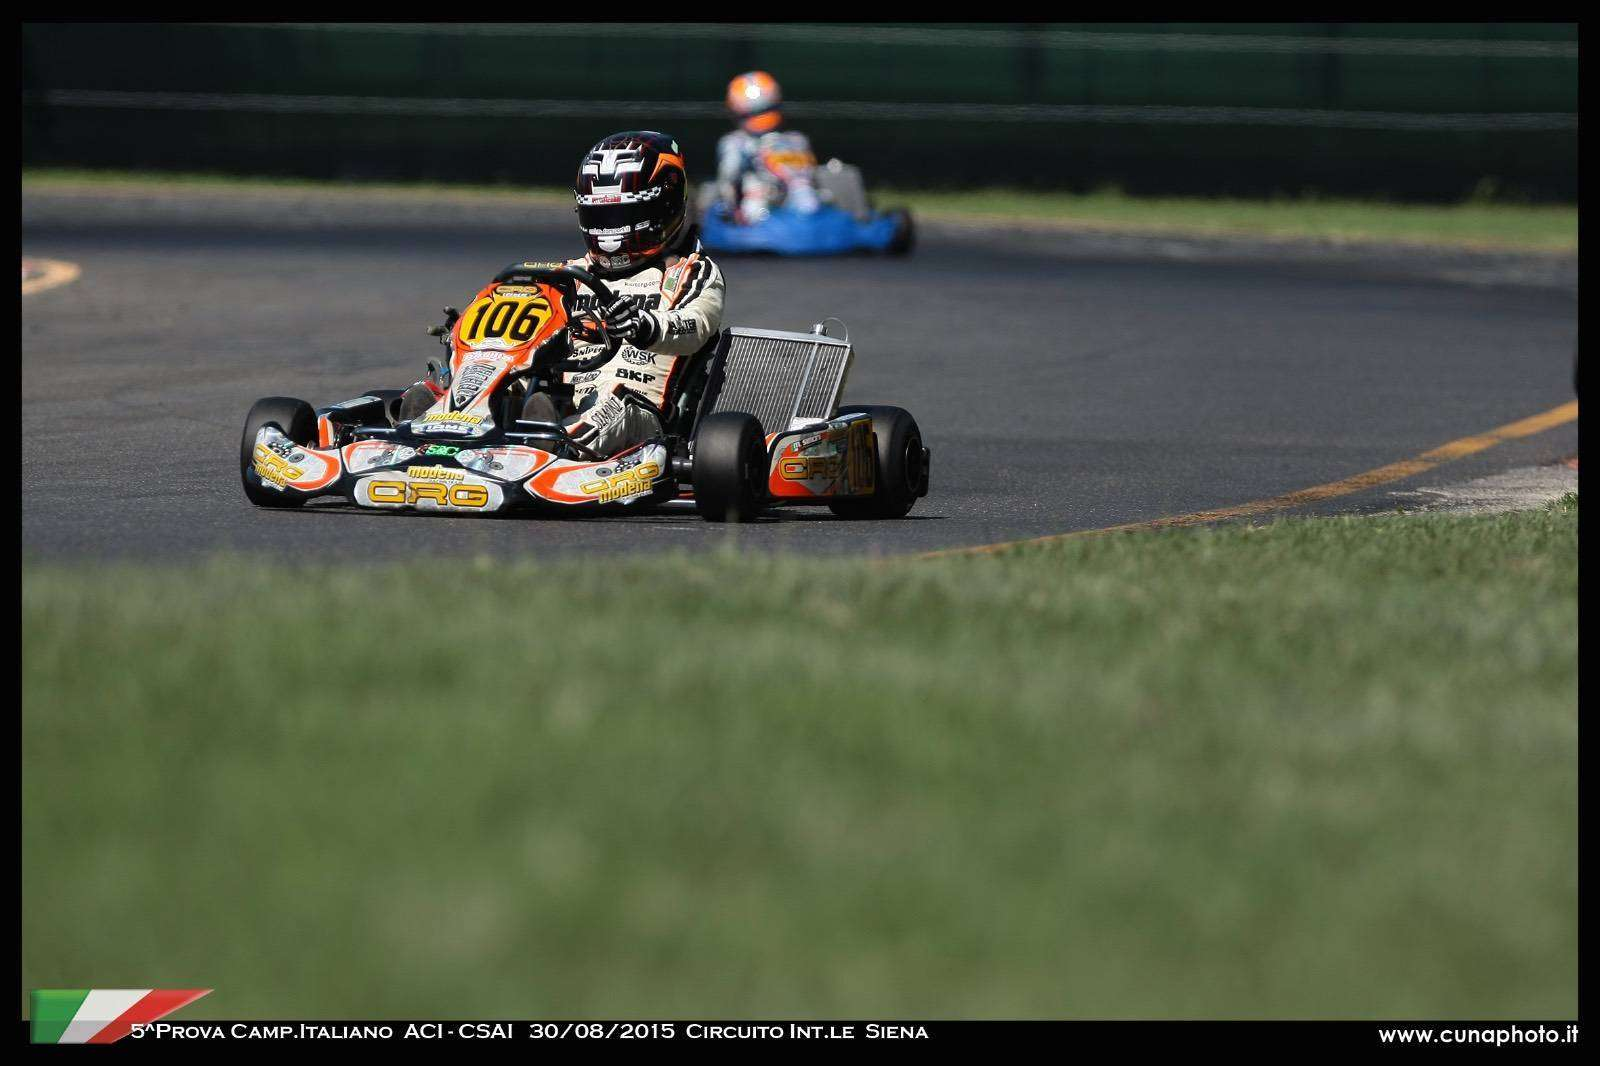 imaf-reasing-seats-karting-22